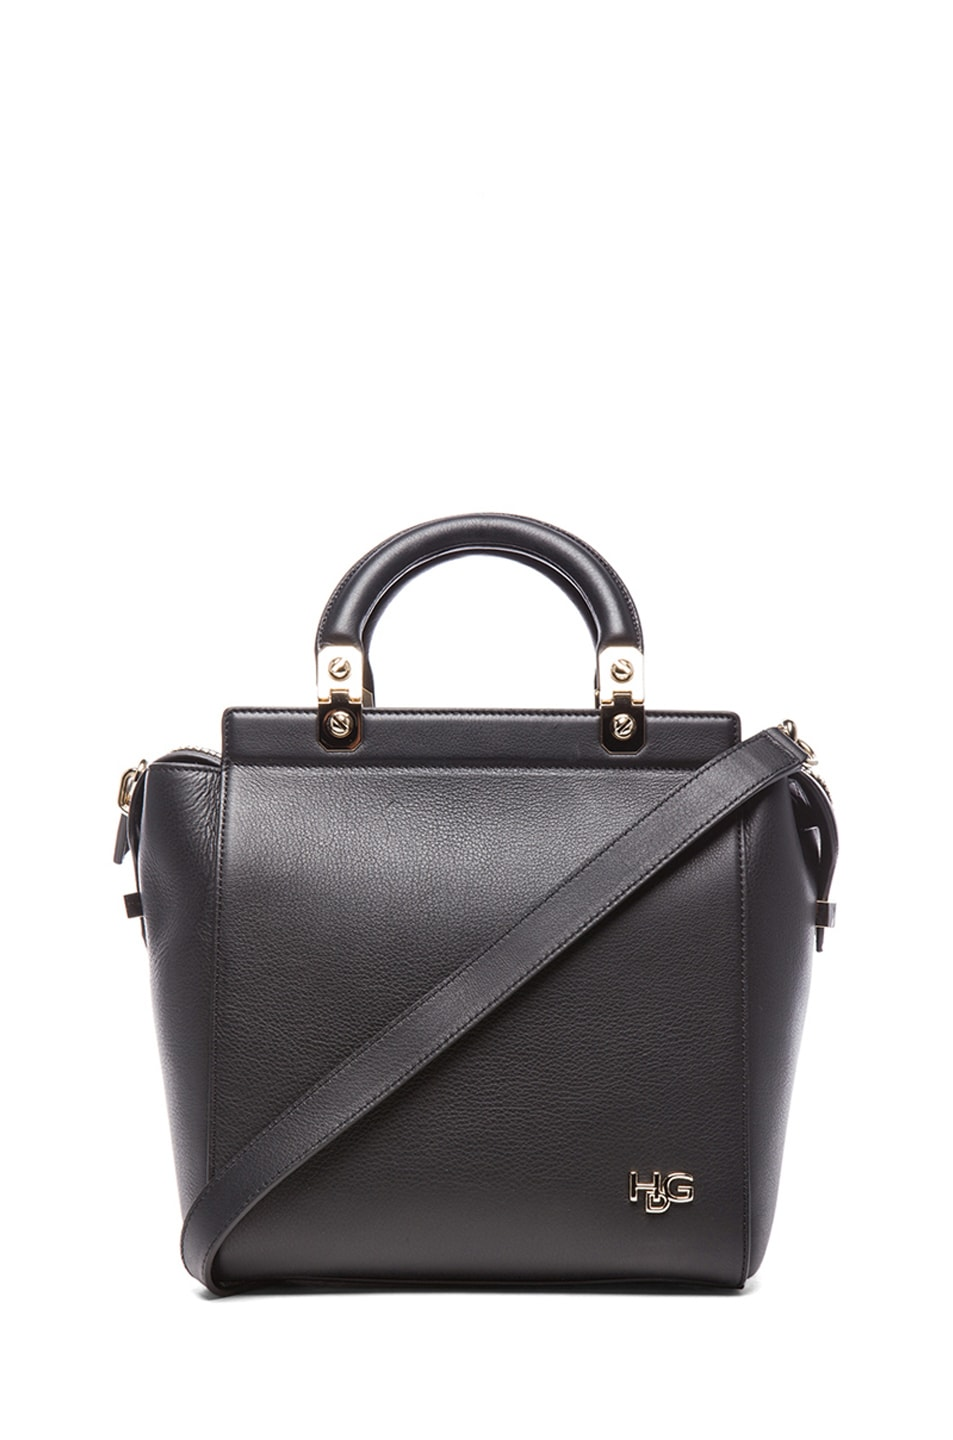 Image 1 of GIVENCHY HDG Doctor Bag in Black